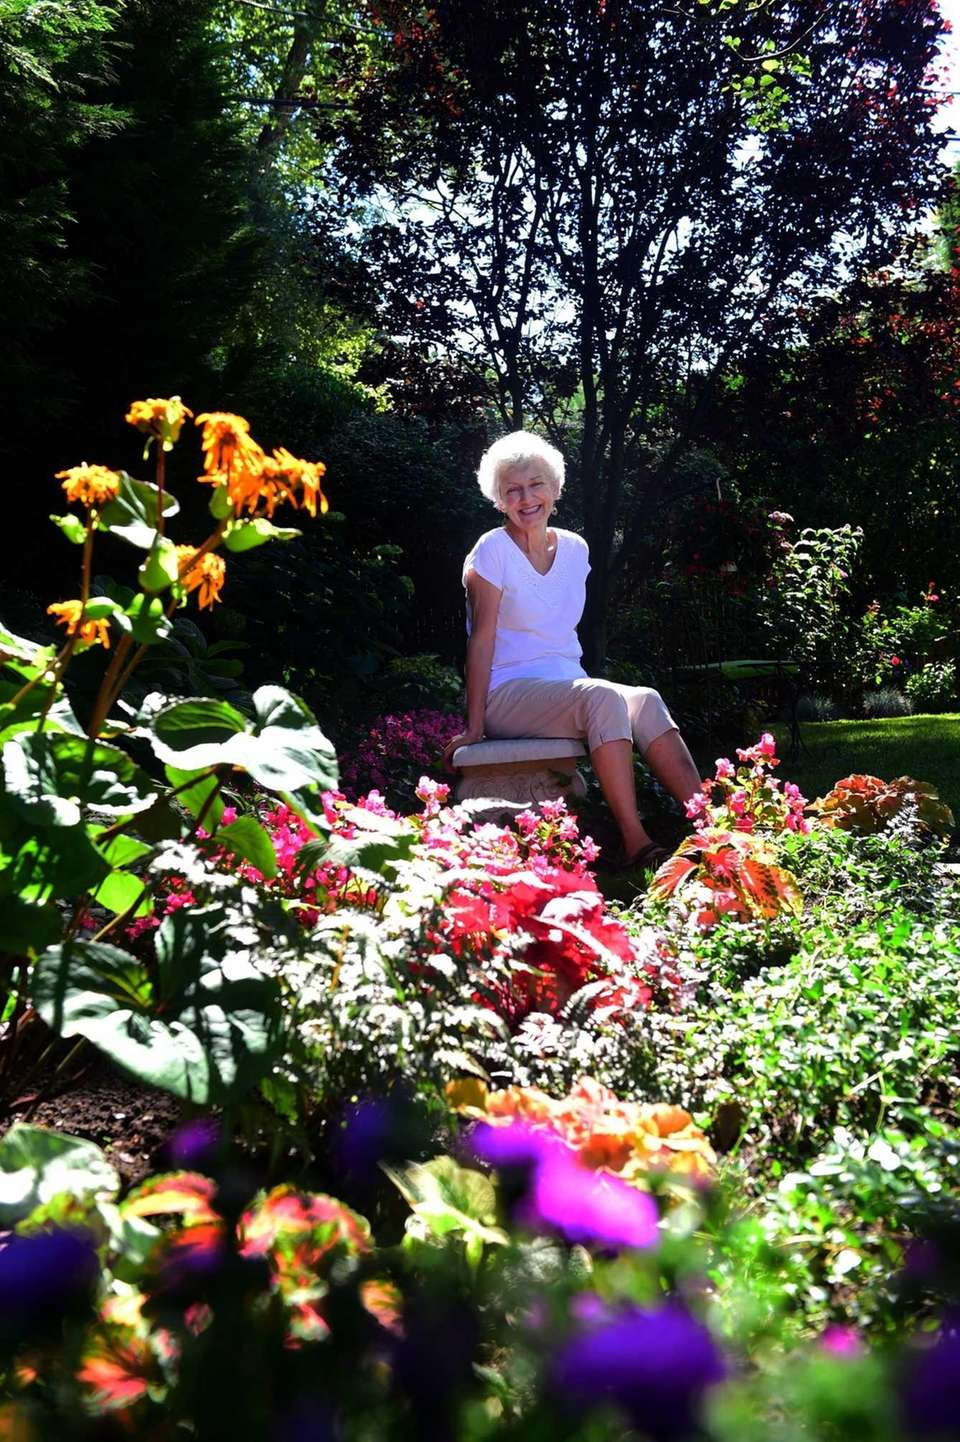 Connie Ring of Plainview has been gardening in